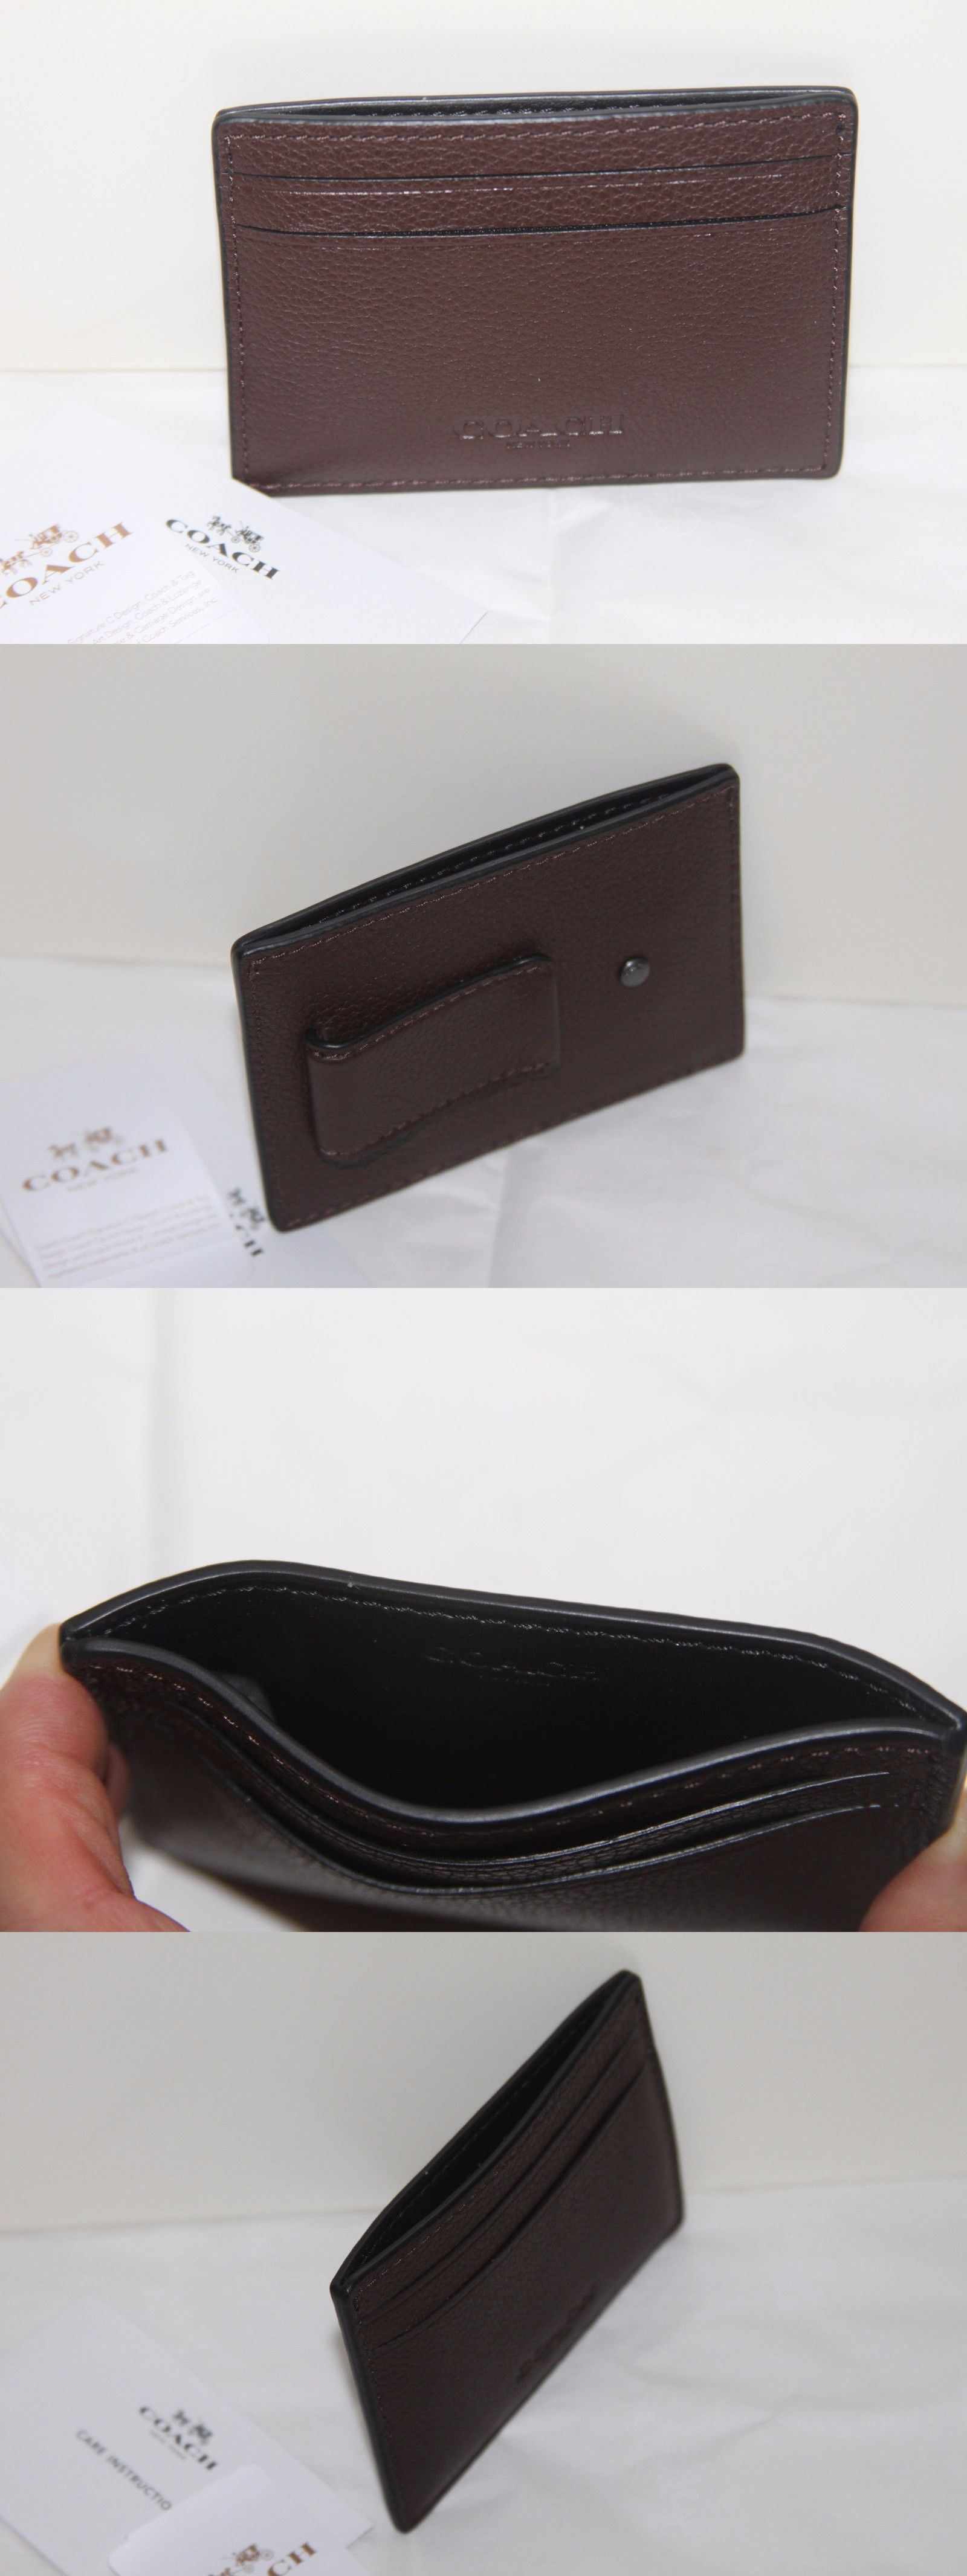 Business and credit card cases 105860 authentic coach men money business and credit card cases 105860 authentic coach men money clip card holder case leather reheart Image collections